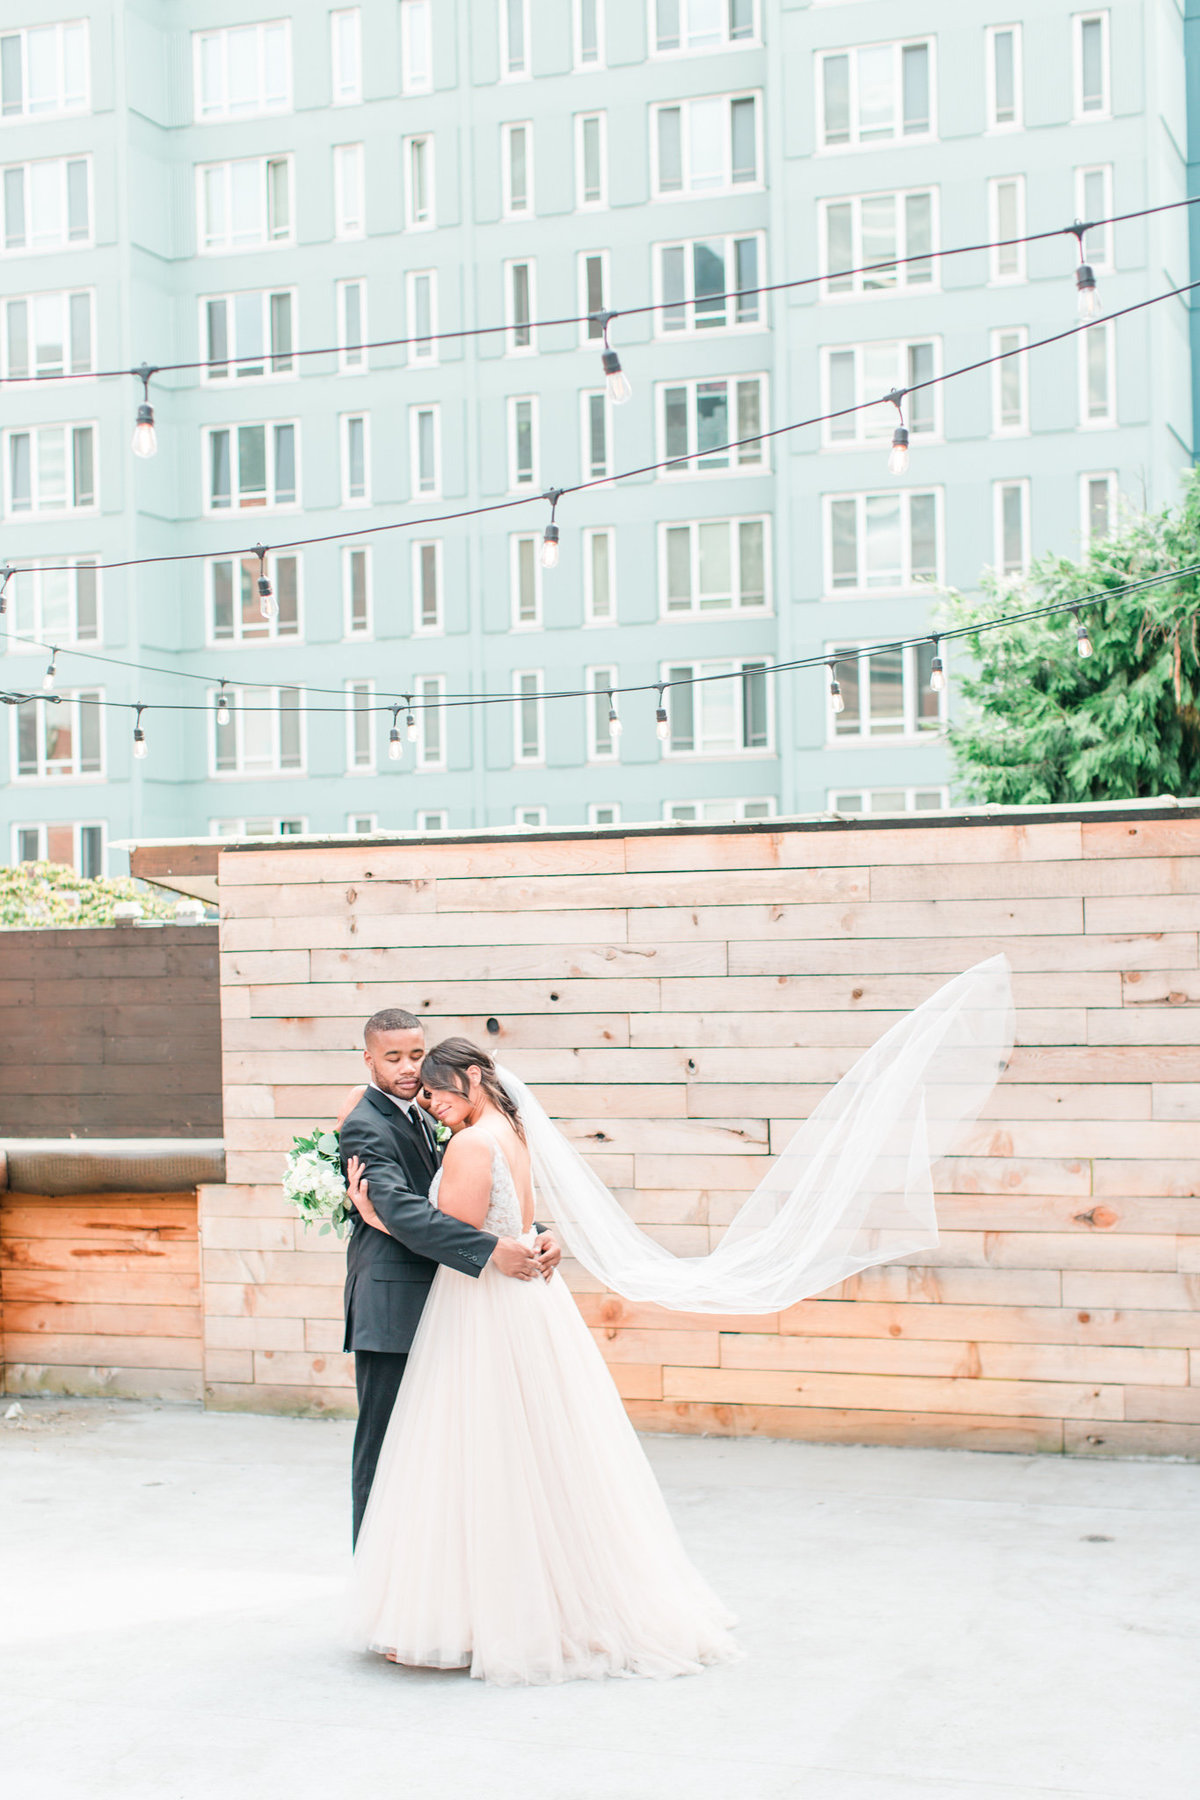 groom-bride-veil-seattle-rooftop-wedding-venue-tia-larue-photography